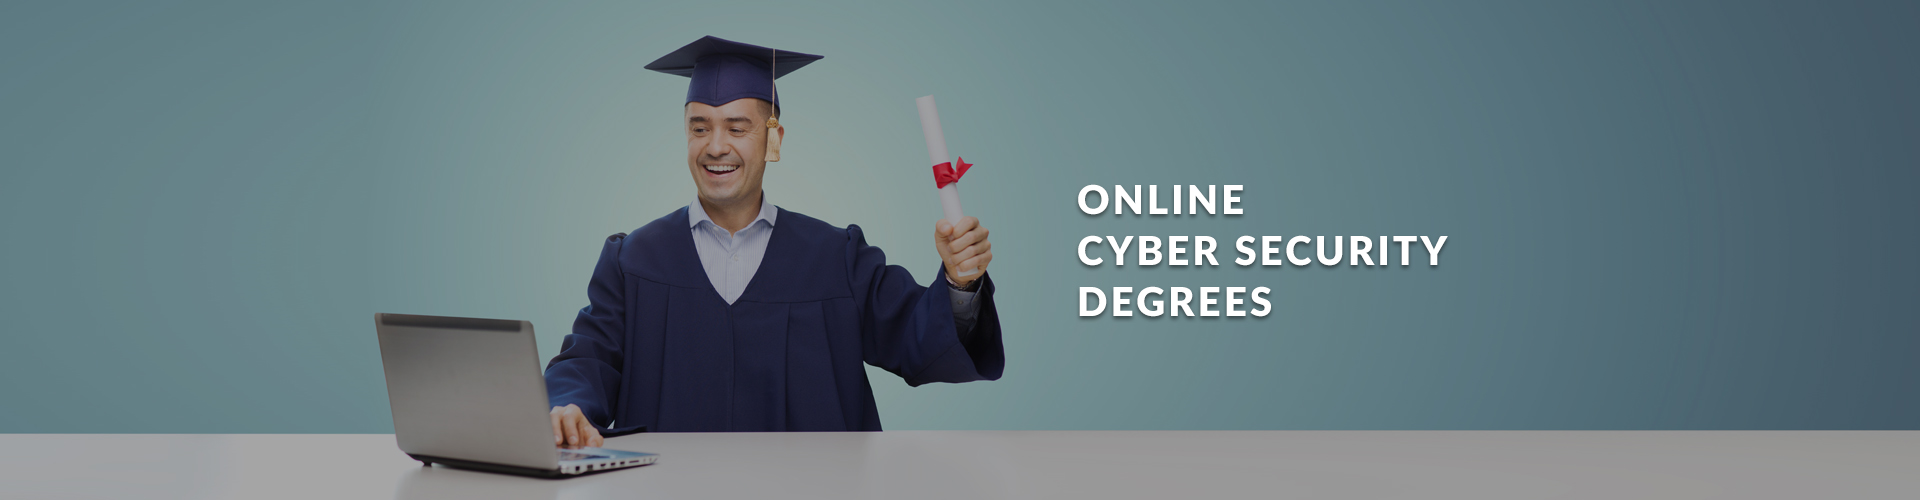 online-cyber-security-degrees